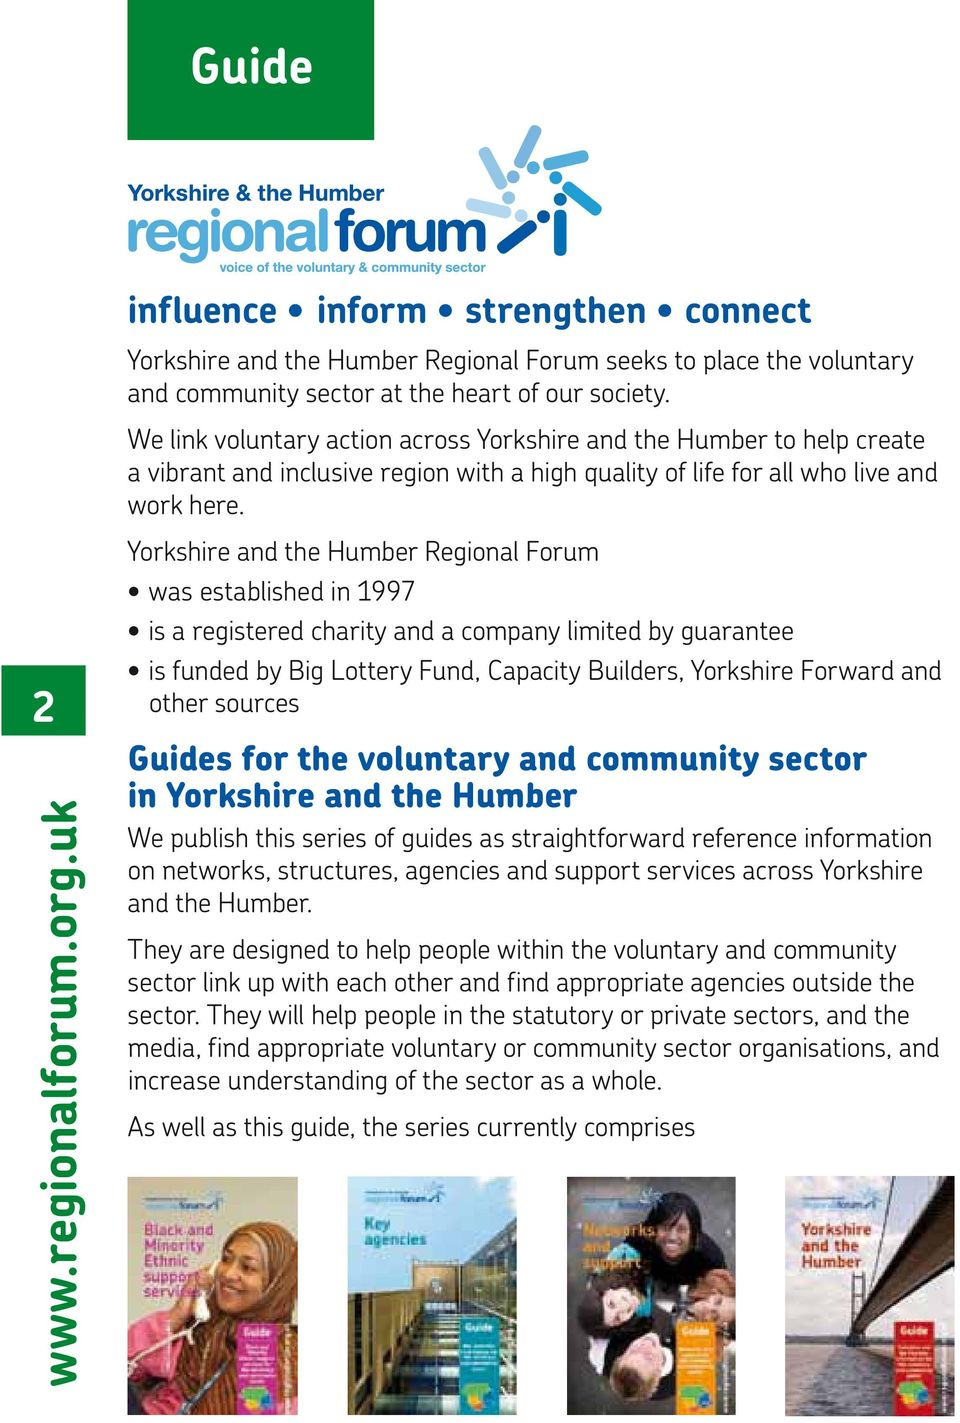 2 Yorkshire and the Humber Regional Forum was established in 1997 is a registered charity and a company limited by guarantee is funded by Big Lottery Fund, Capacity Builders, Yorkshire Forward and